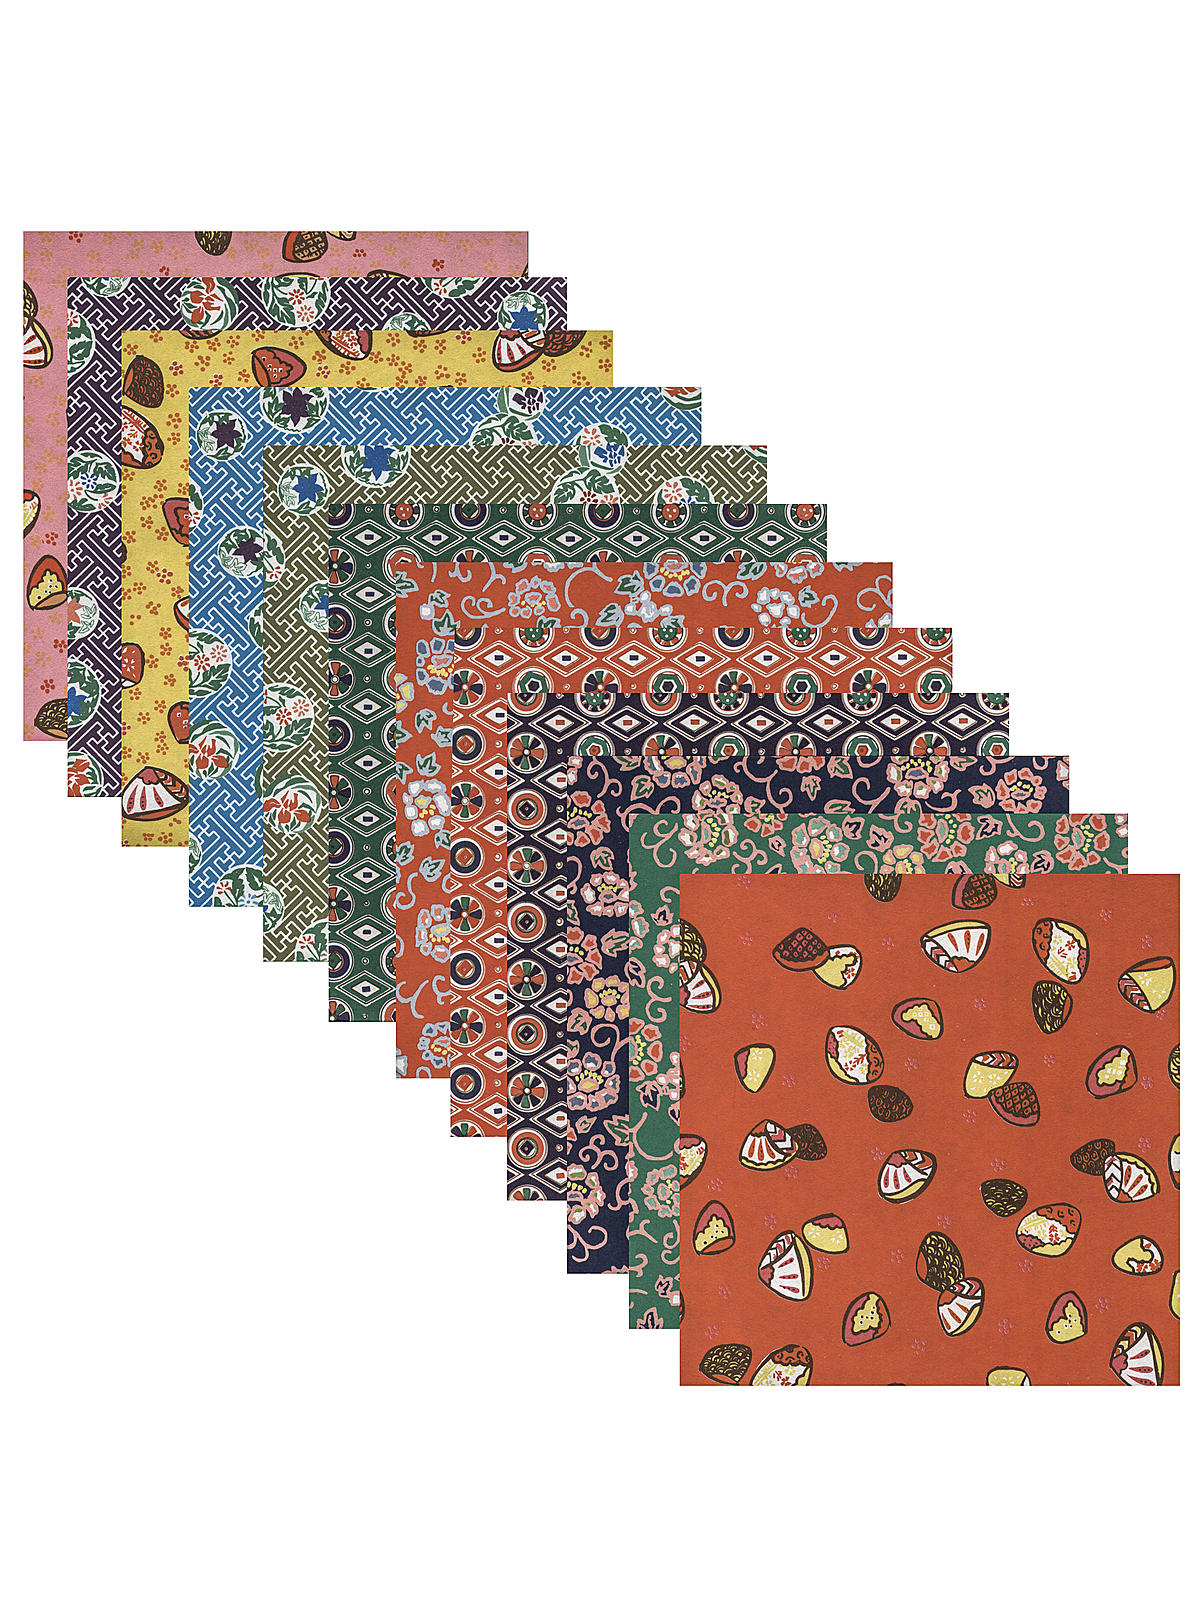 Origami Paper 5 7 8 In. X 5 7 8 In. Washi Chiyogami 24 Sheets